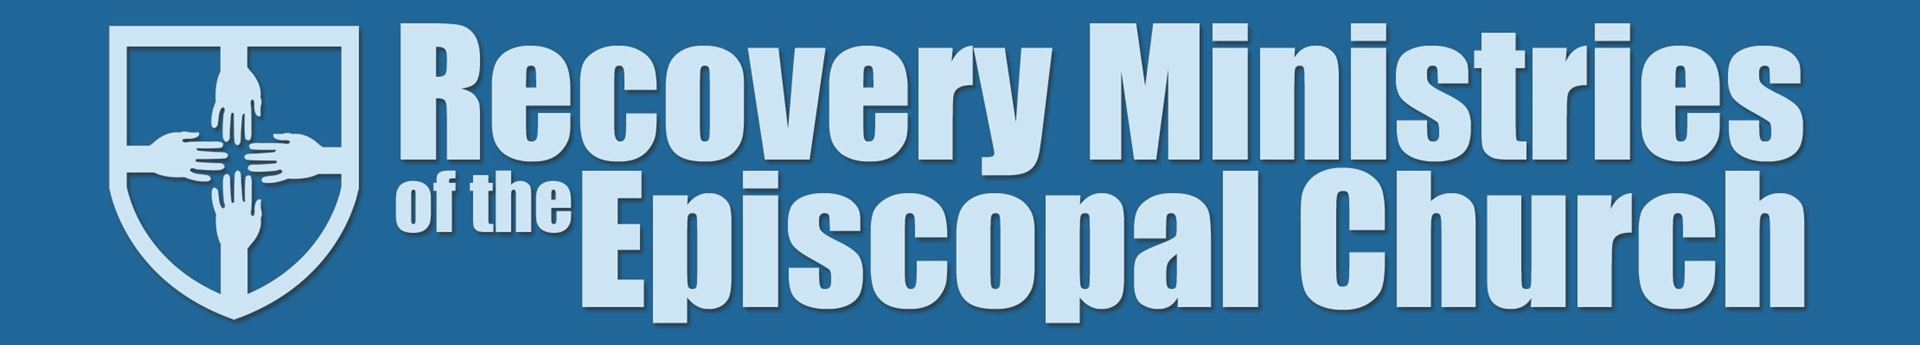 Recovery Ministries of The Episcopal Church, resources for churches, clergy and lay people at www.episcopalrecovery.org (click photo for link).